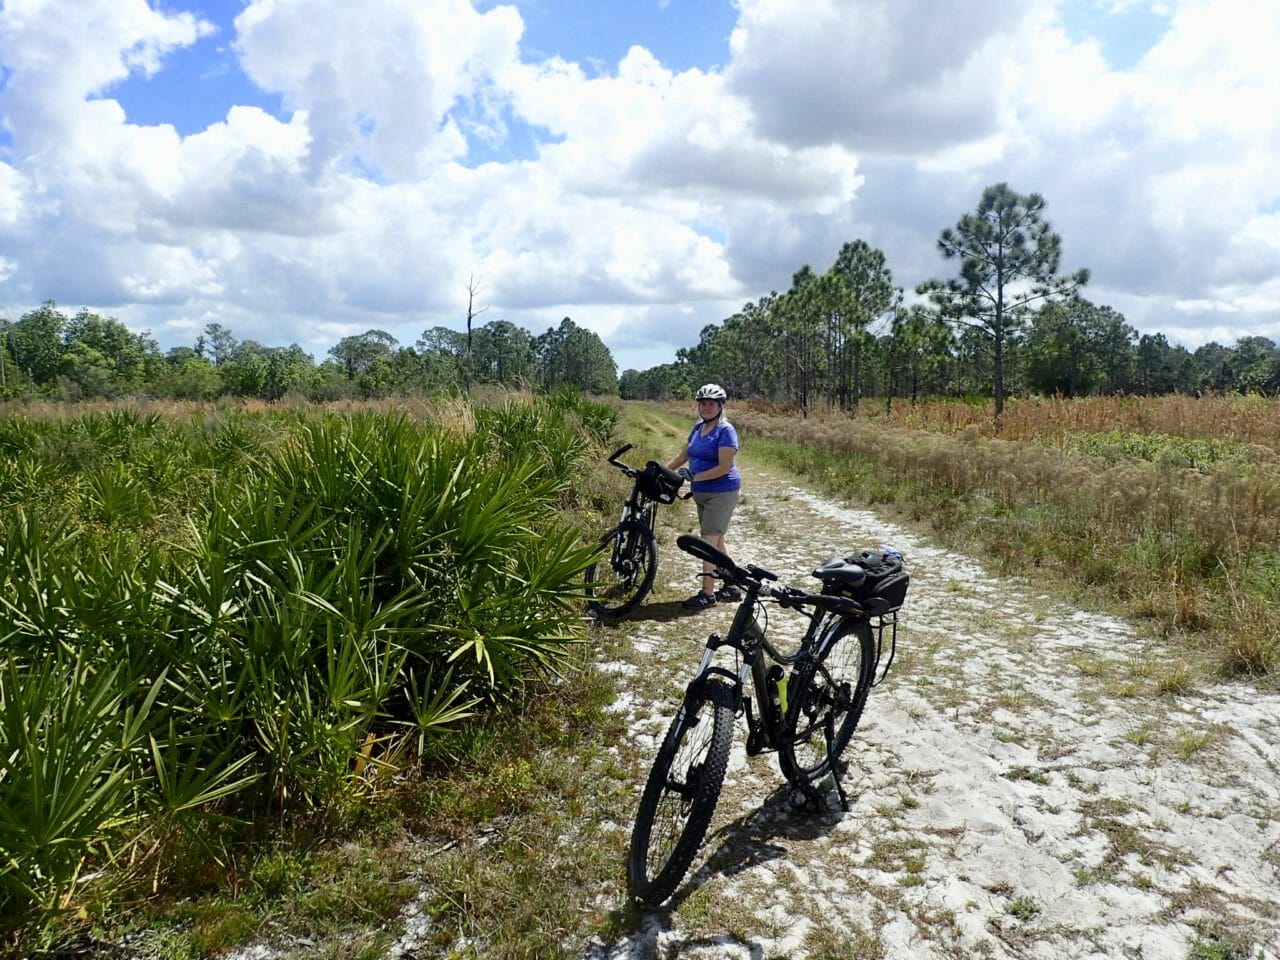 Trans-Florida Central Railroad Trail